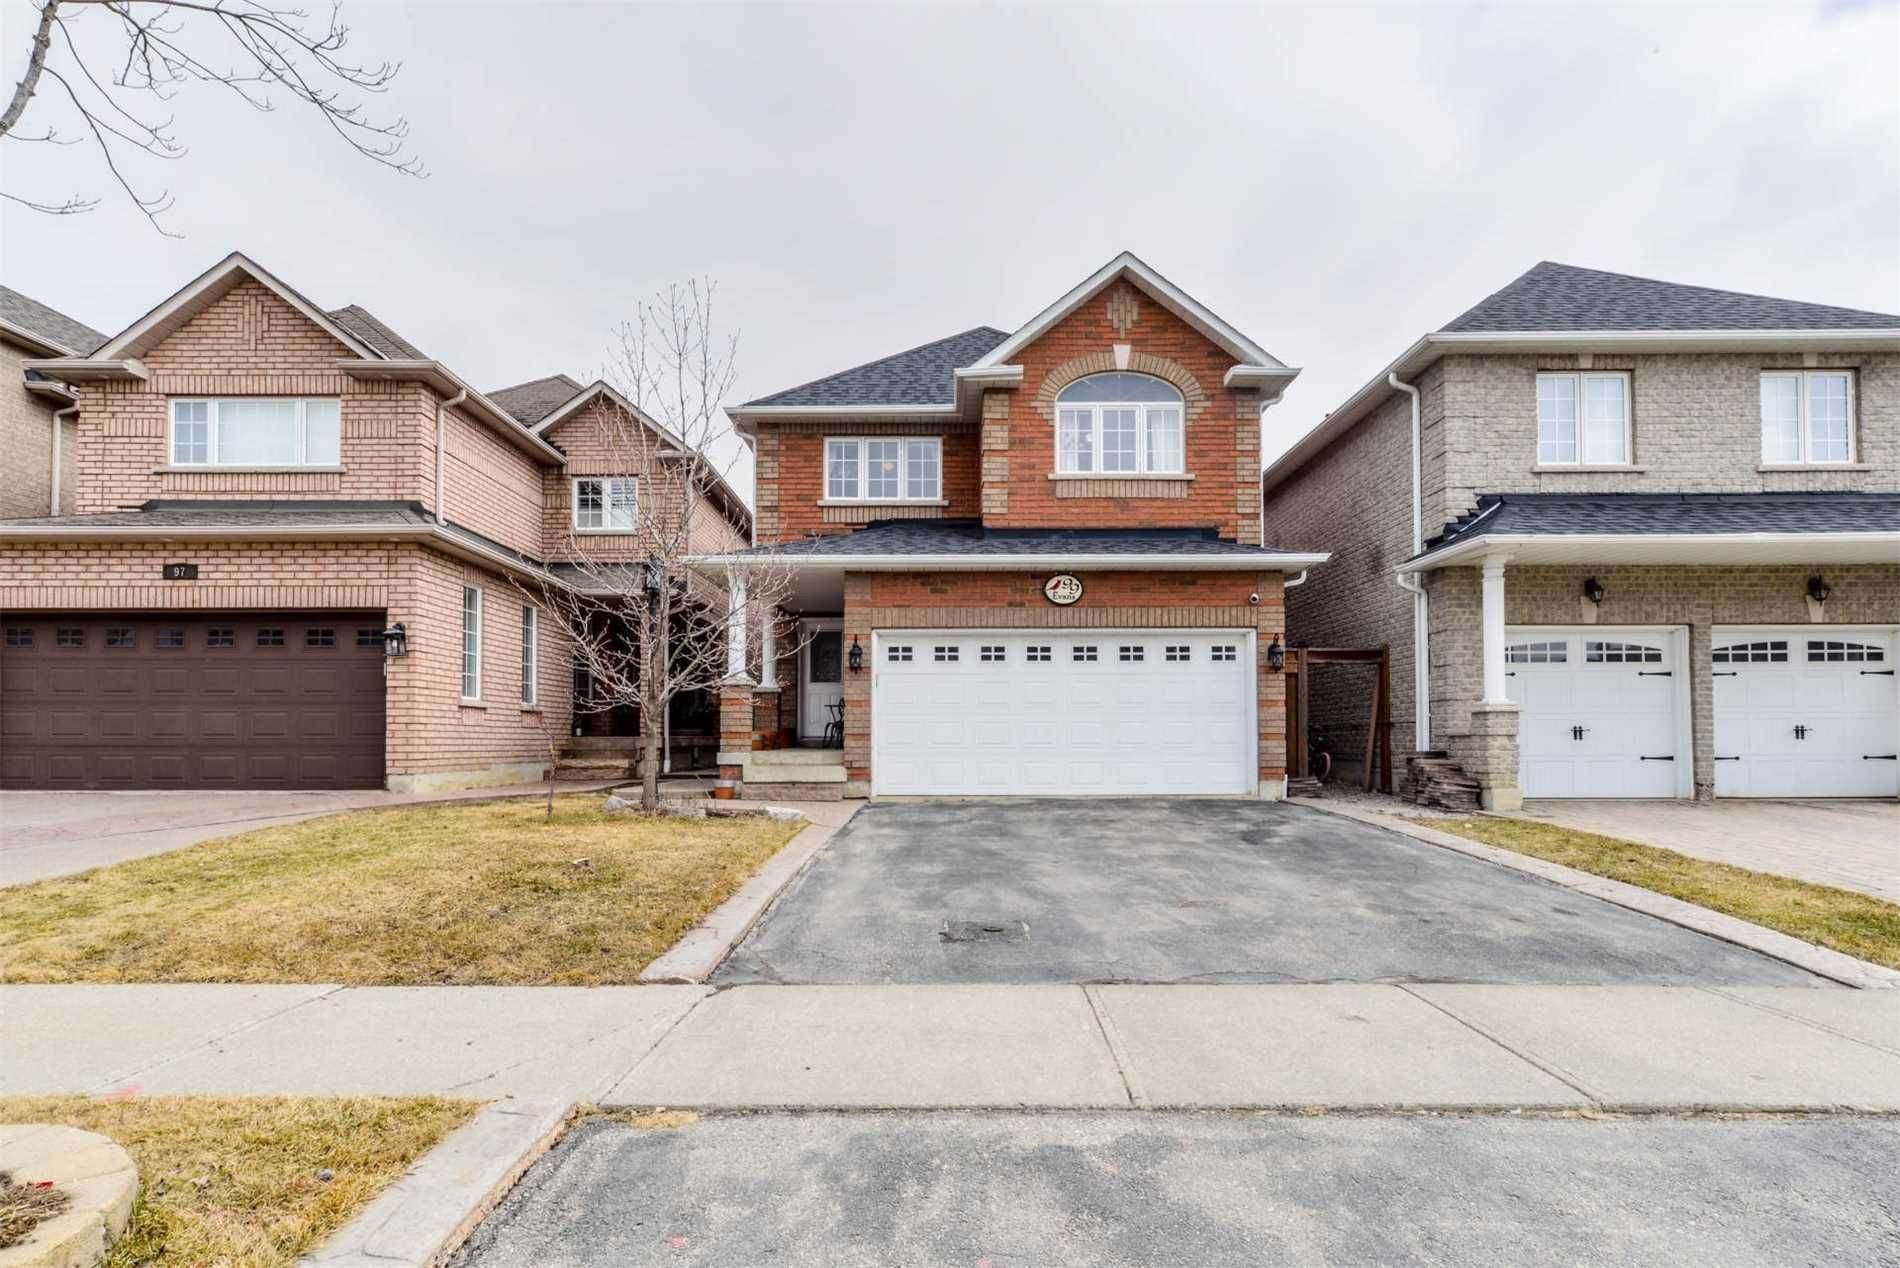 99 Humbershed Crescent for sale